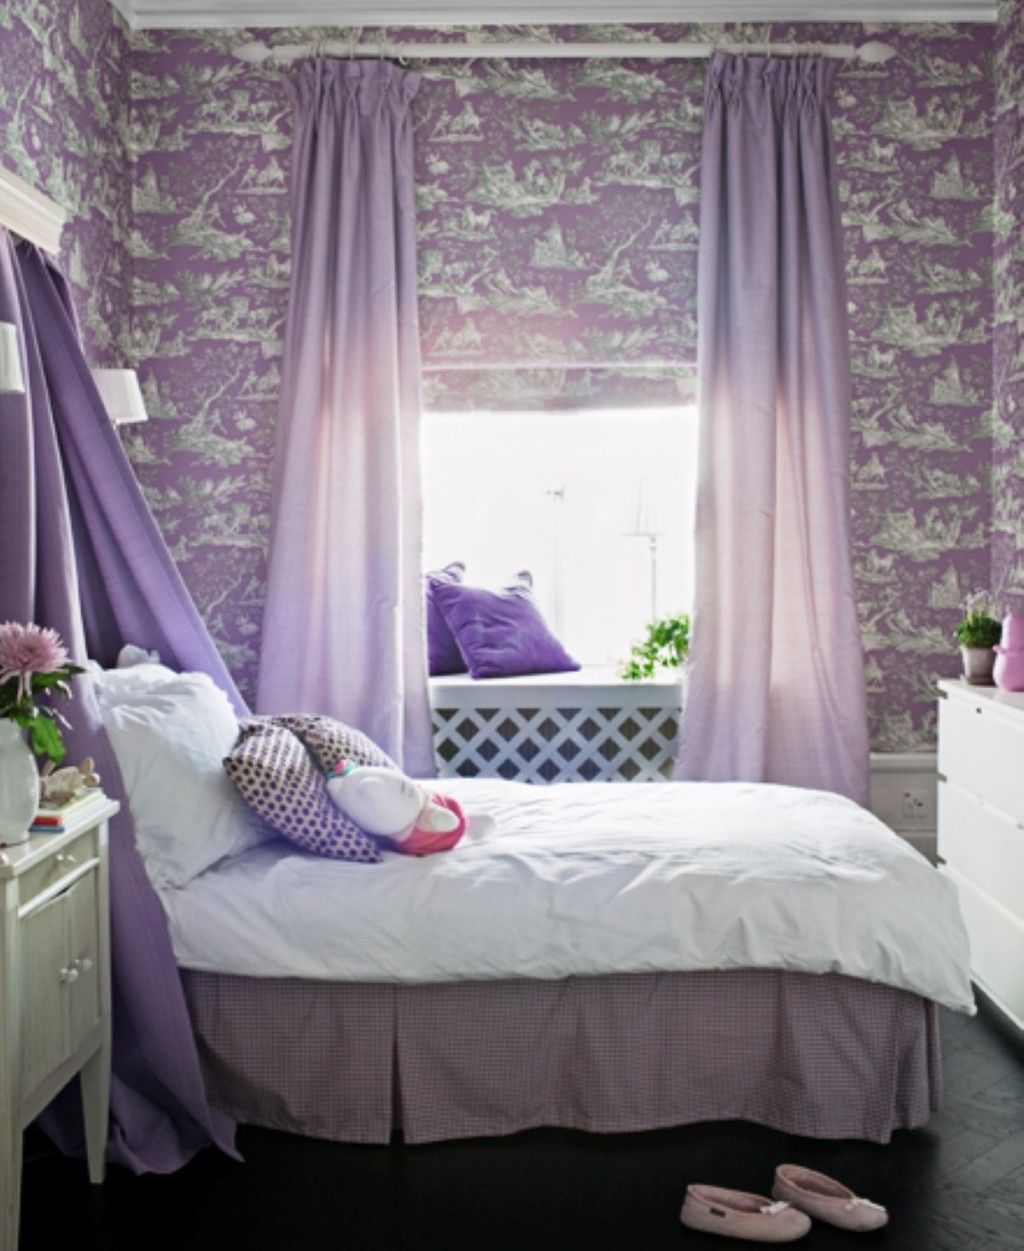 Kids room purple bedroom for a girl with purple curtains also black flooring and white - Dark purple bedroom for girls ...